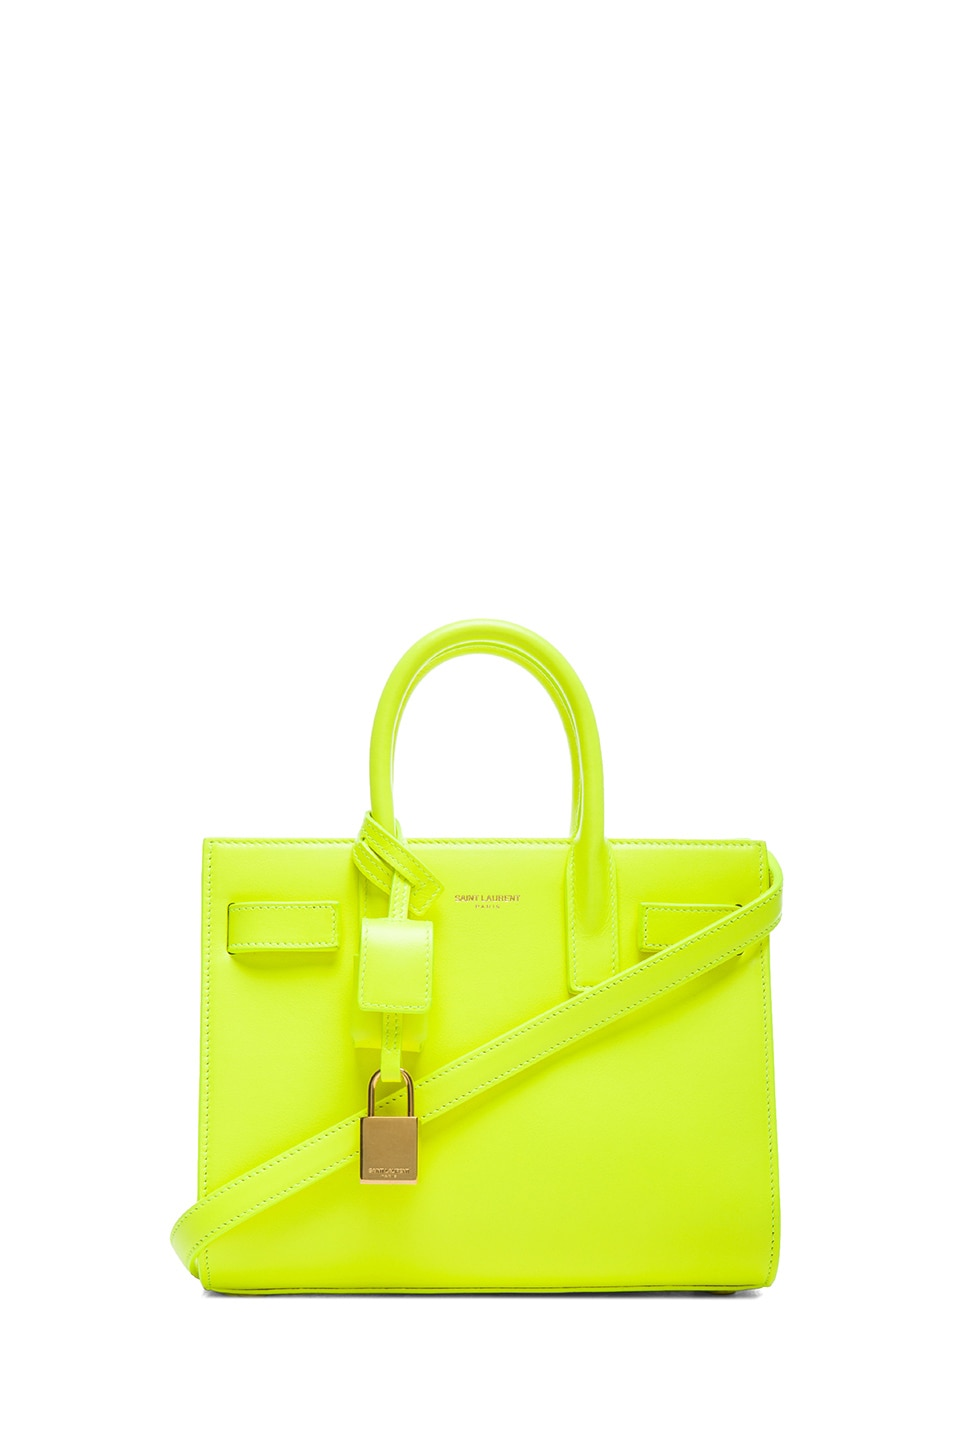 Image 1 of Saint Laurent Baby Sac De Jour Carryall Bag in Neon Yellow